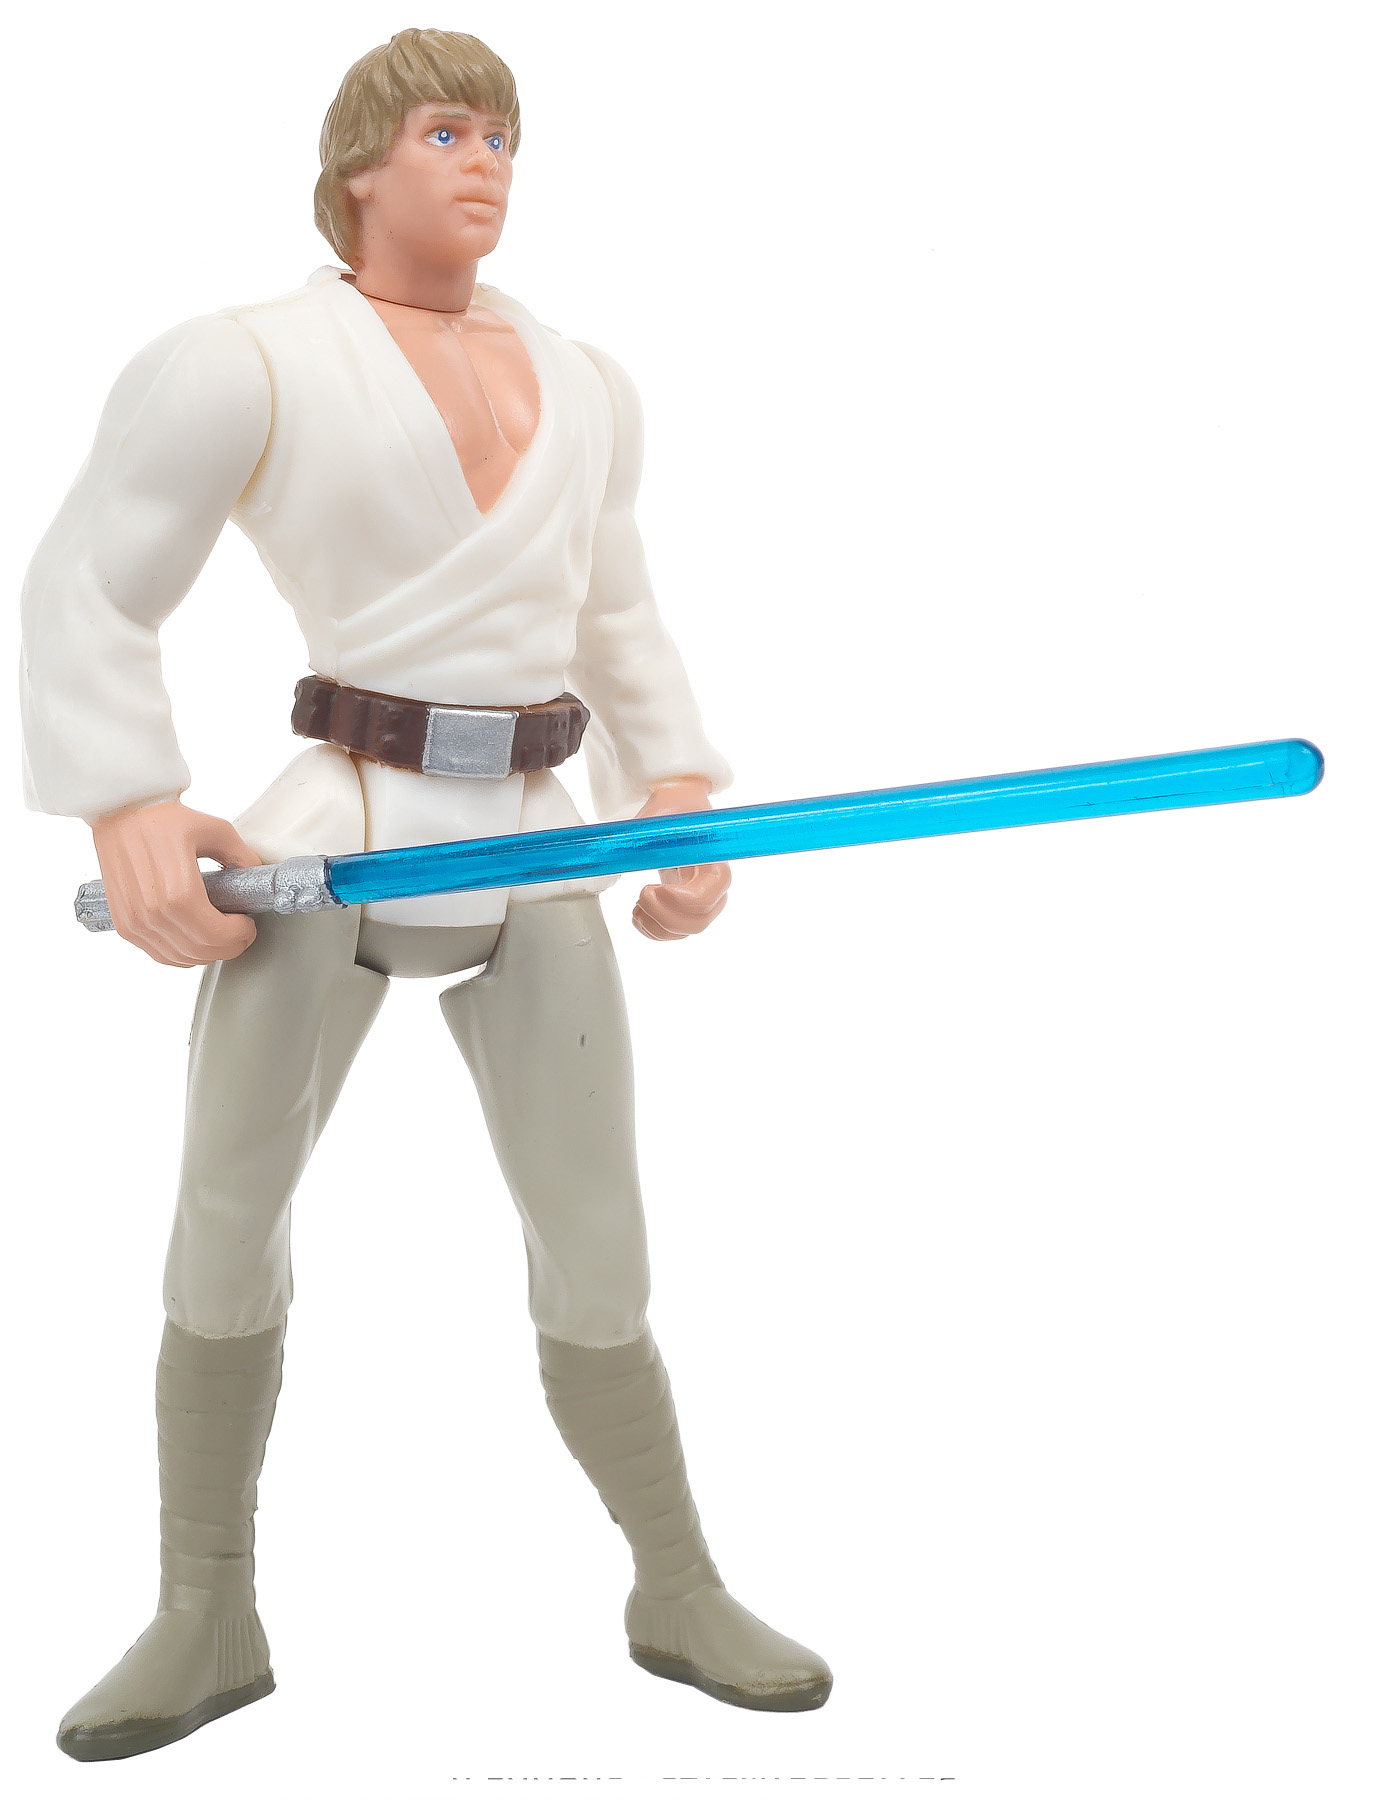 star-wars-the-power-of-the-force-3-75-action-figure-luke-skywalker-with-grappling-hook-blaster-and-lightsaber-bilingual-package-22037.jpg